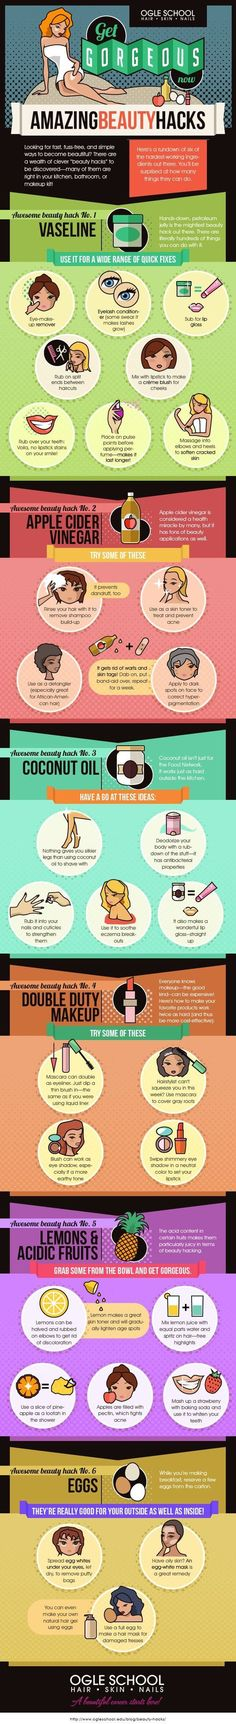 Unconventional Beauty Secrets. The Ogle School breaks down some of the most useful beauty hacks that you can access right in your home.: